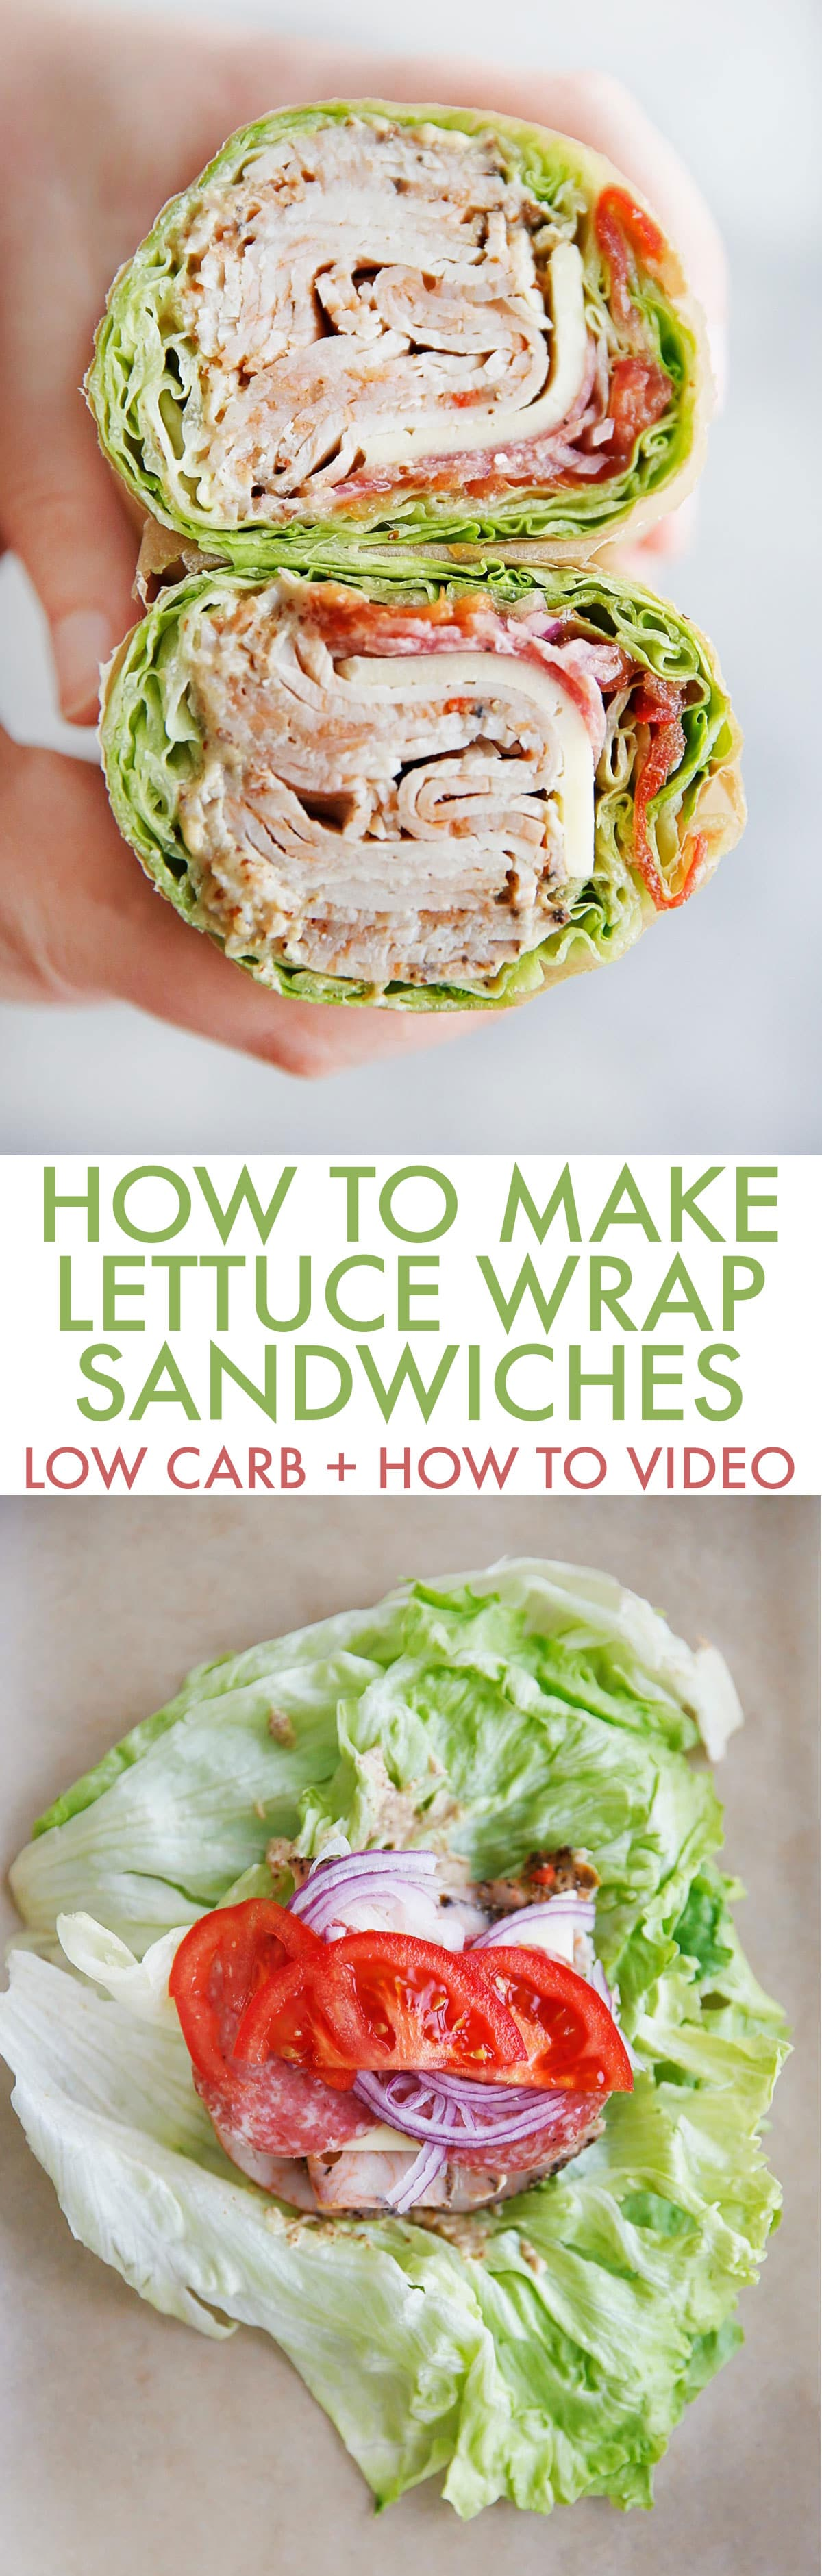 How to Make a Lettuce Wrap Sandwich